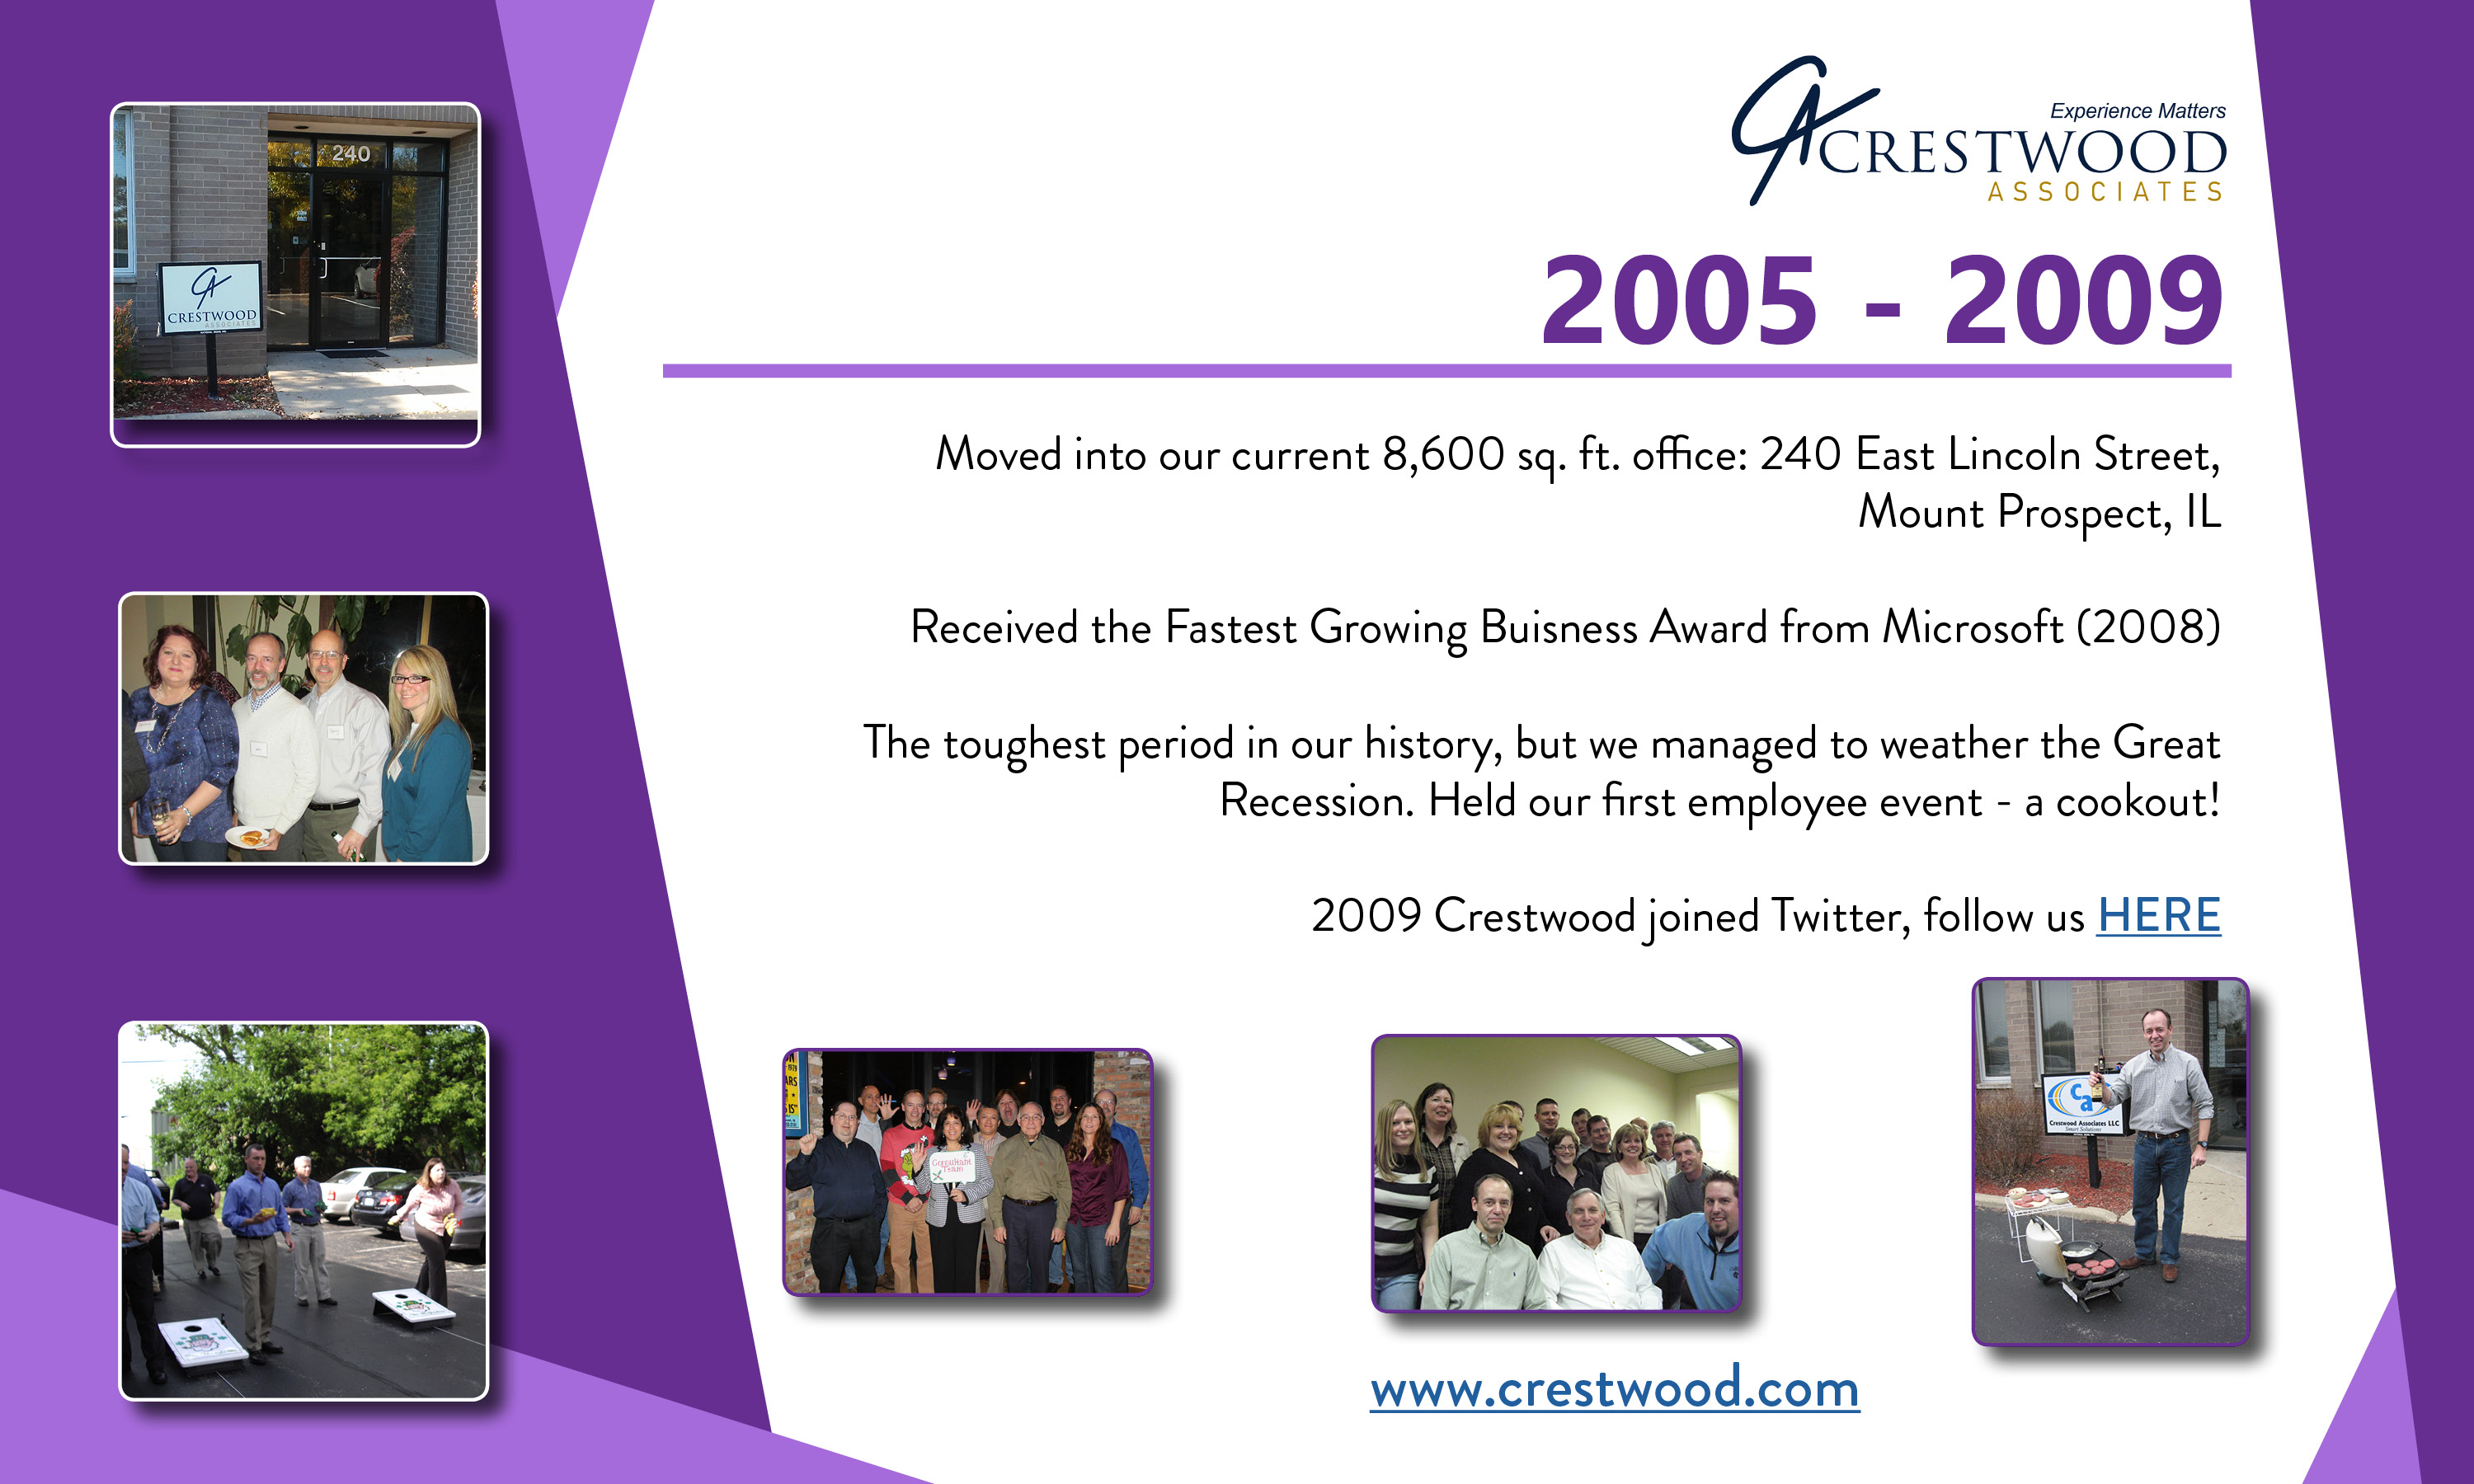 Crestwood 2005 to 2009